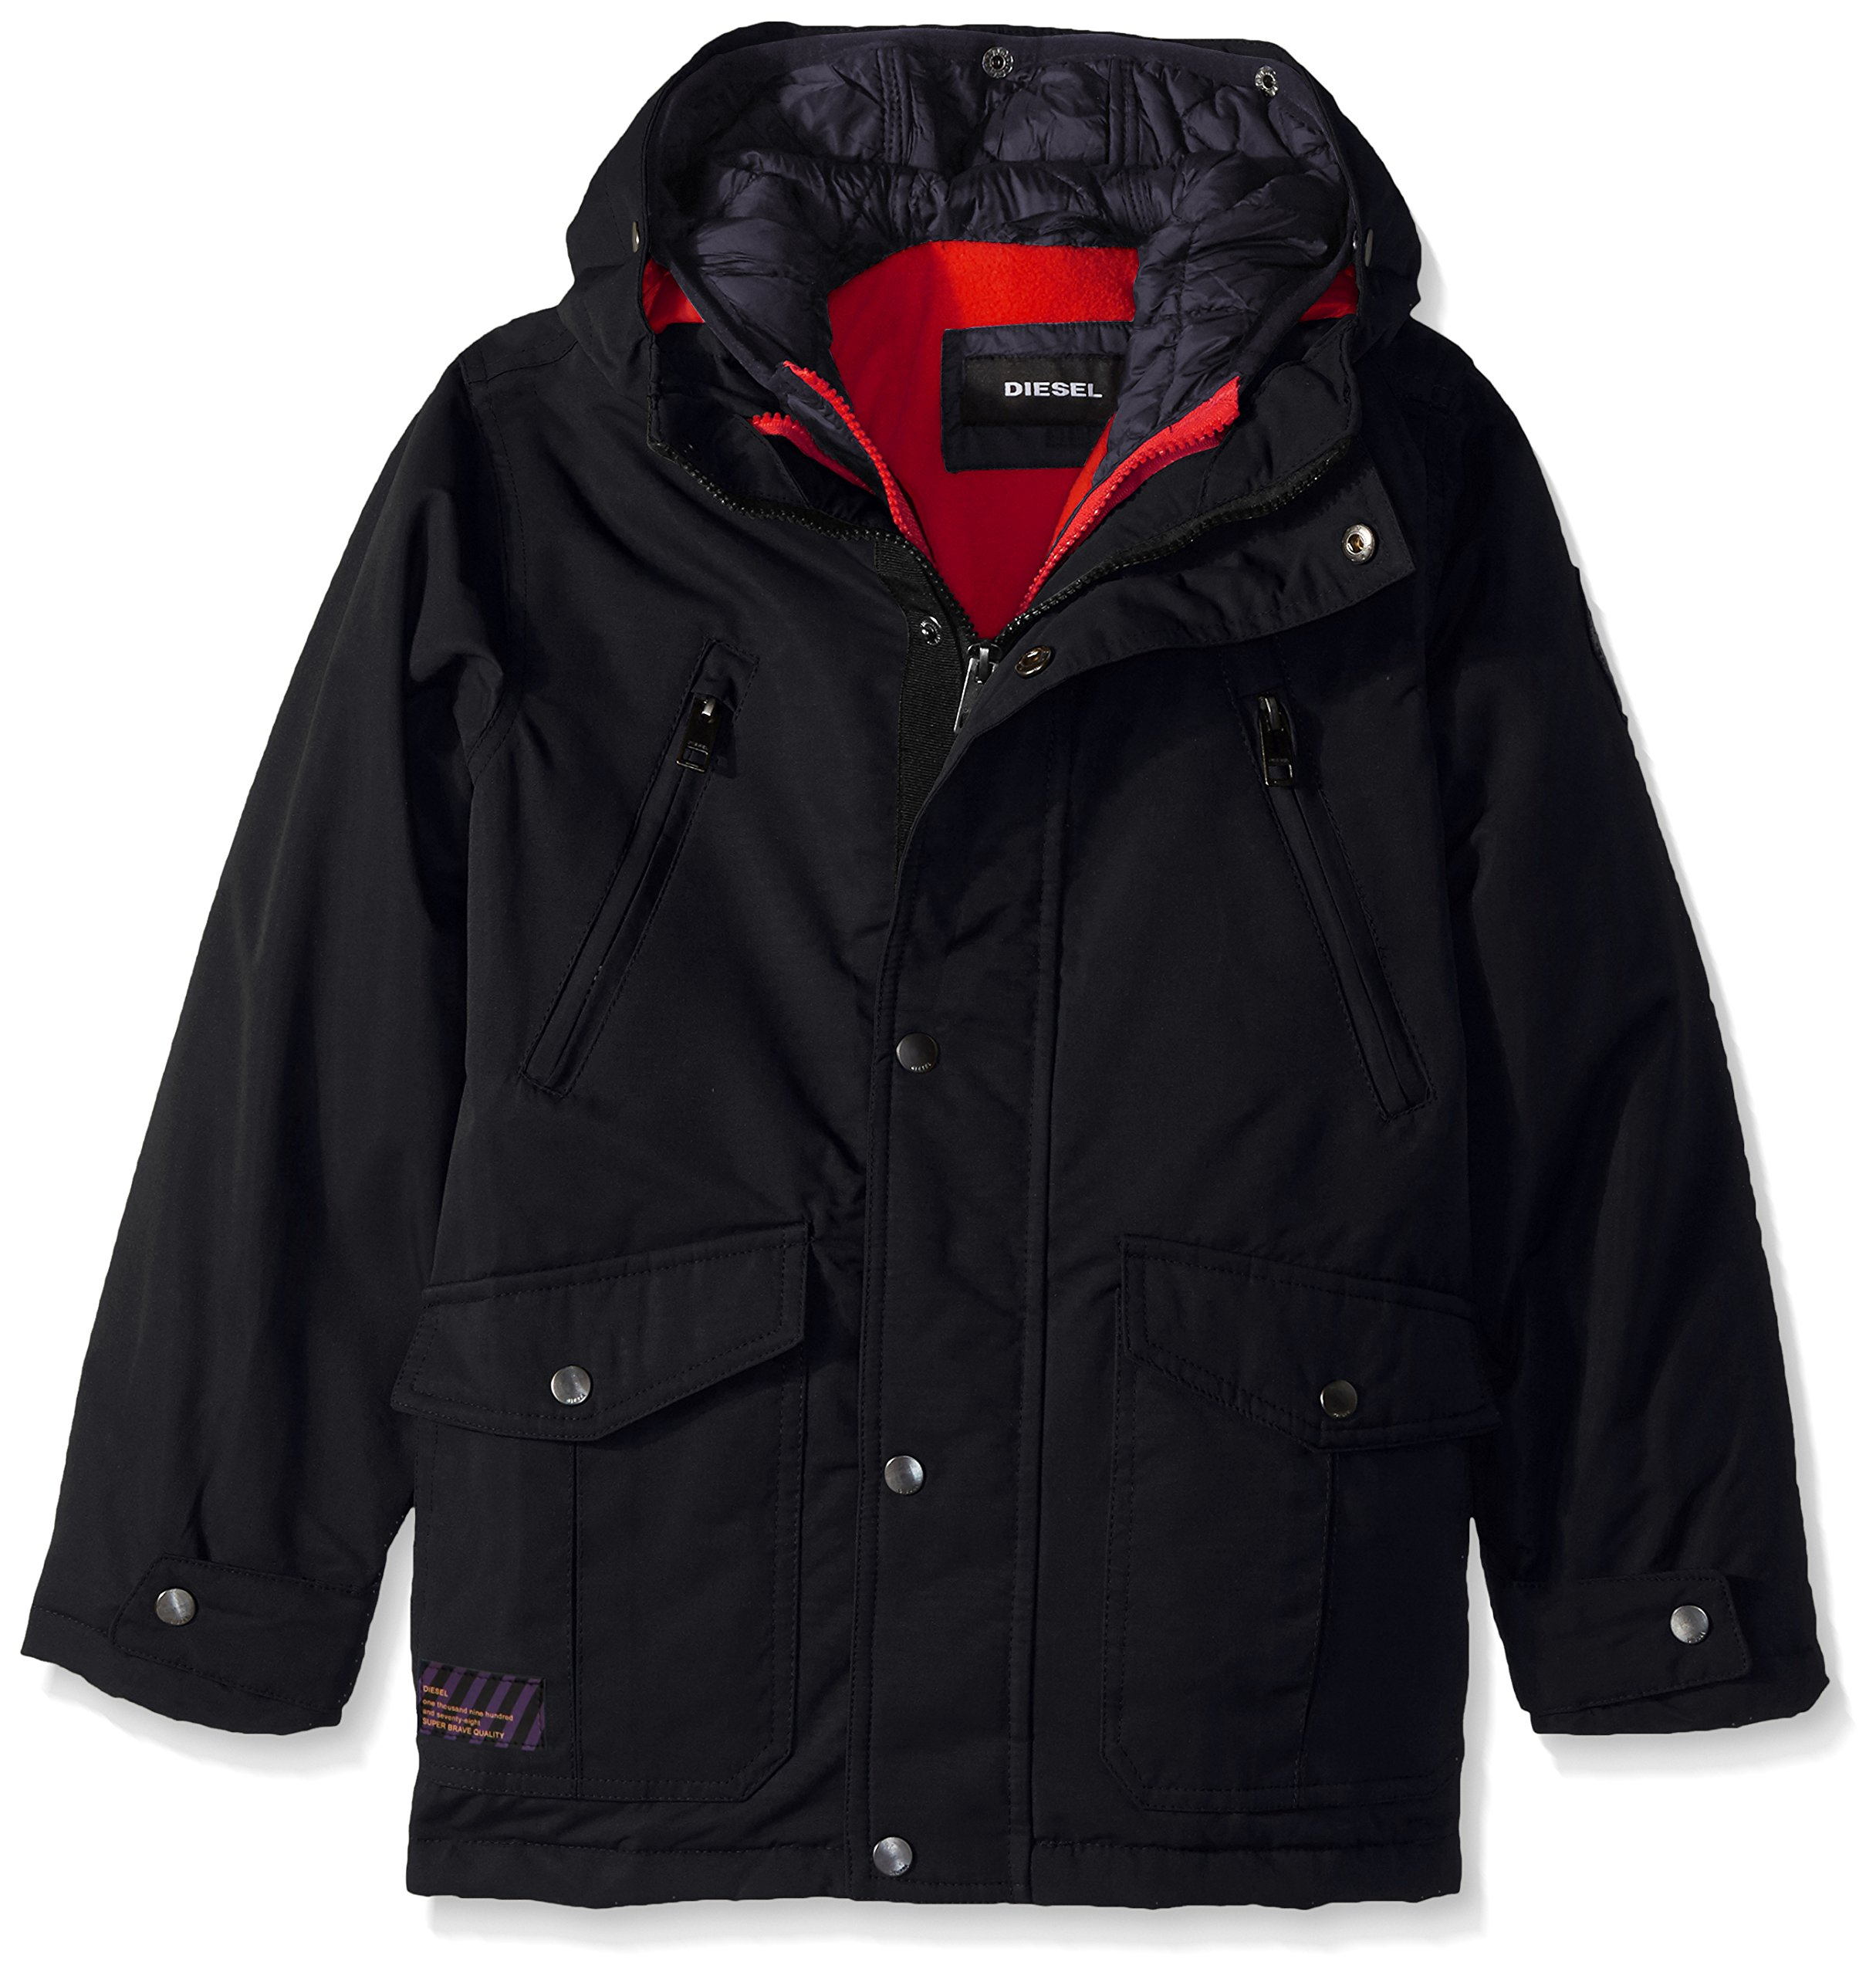 Diesel Boys' Little Outerwear Jacket (More Styles Available), Systems-DS10-Black/Charcoal, 5/6